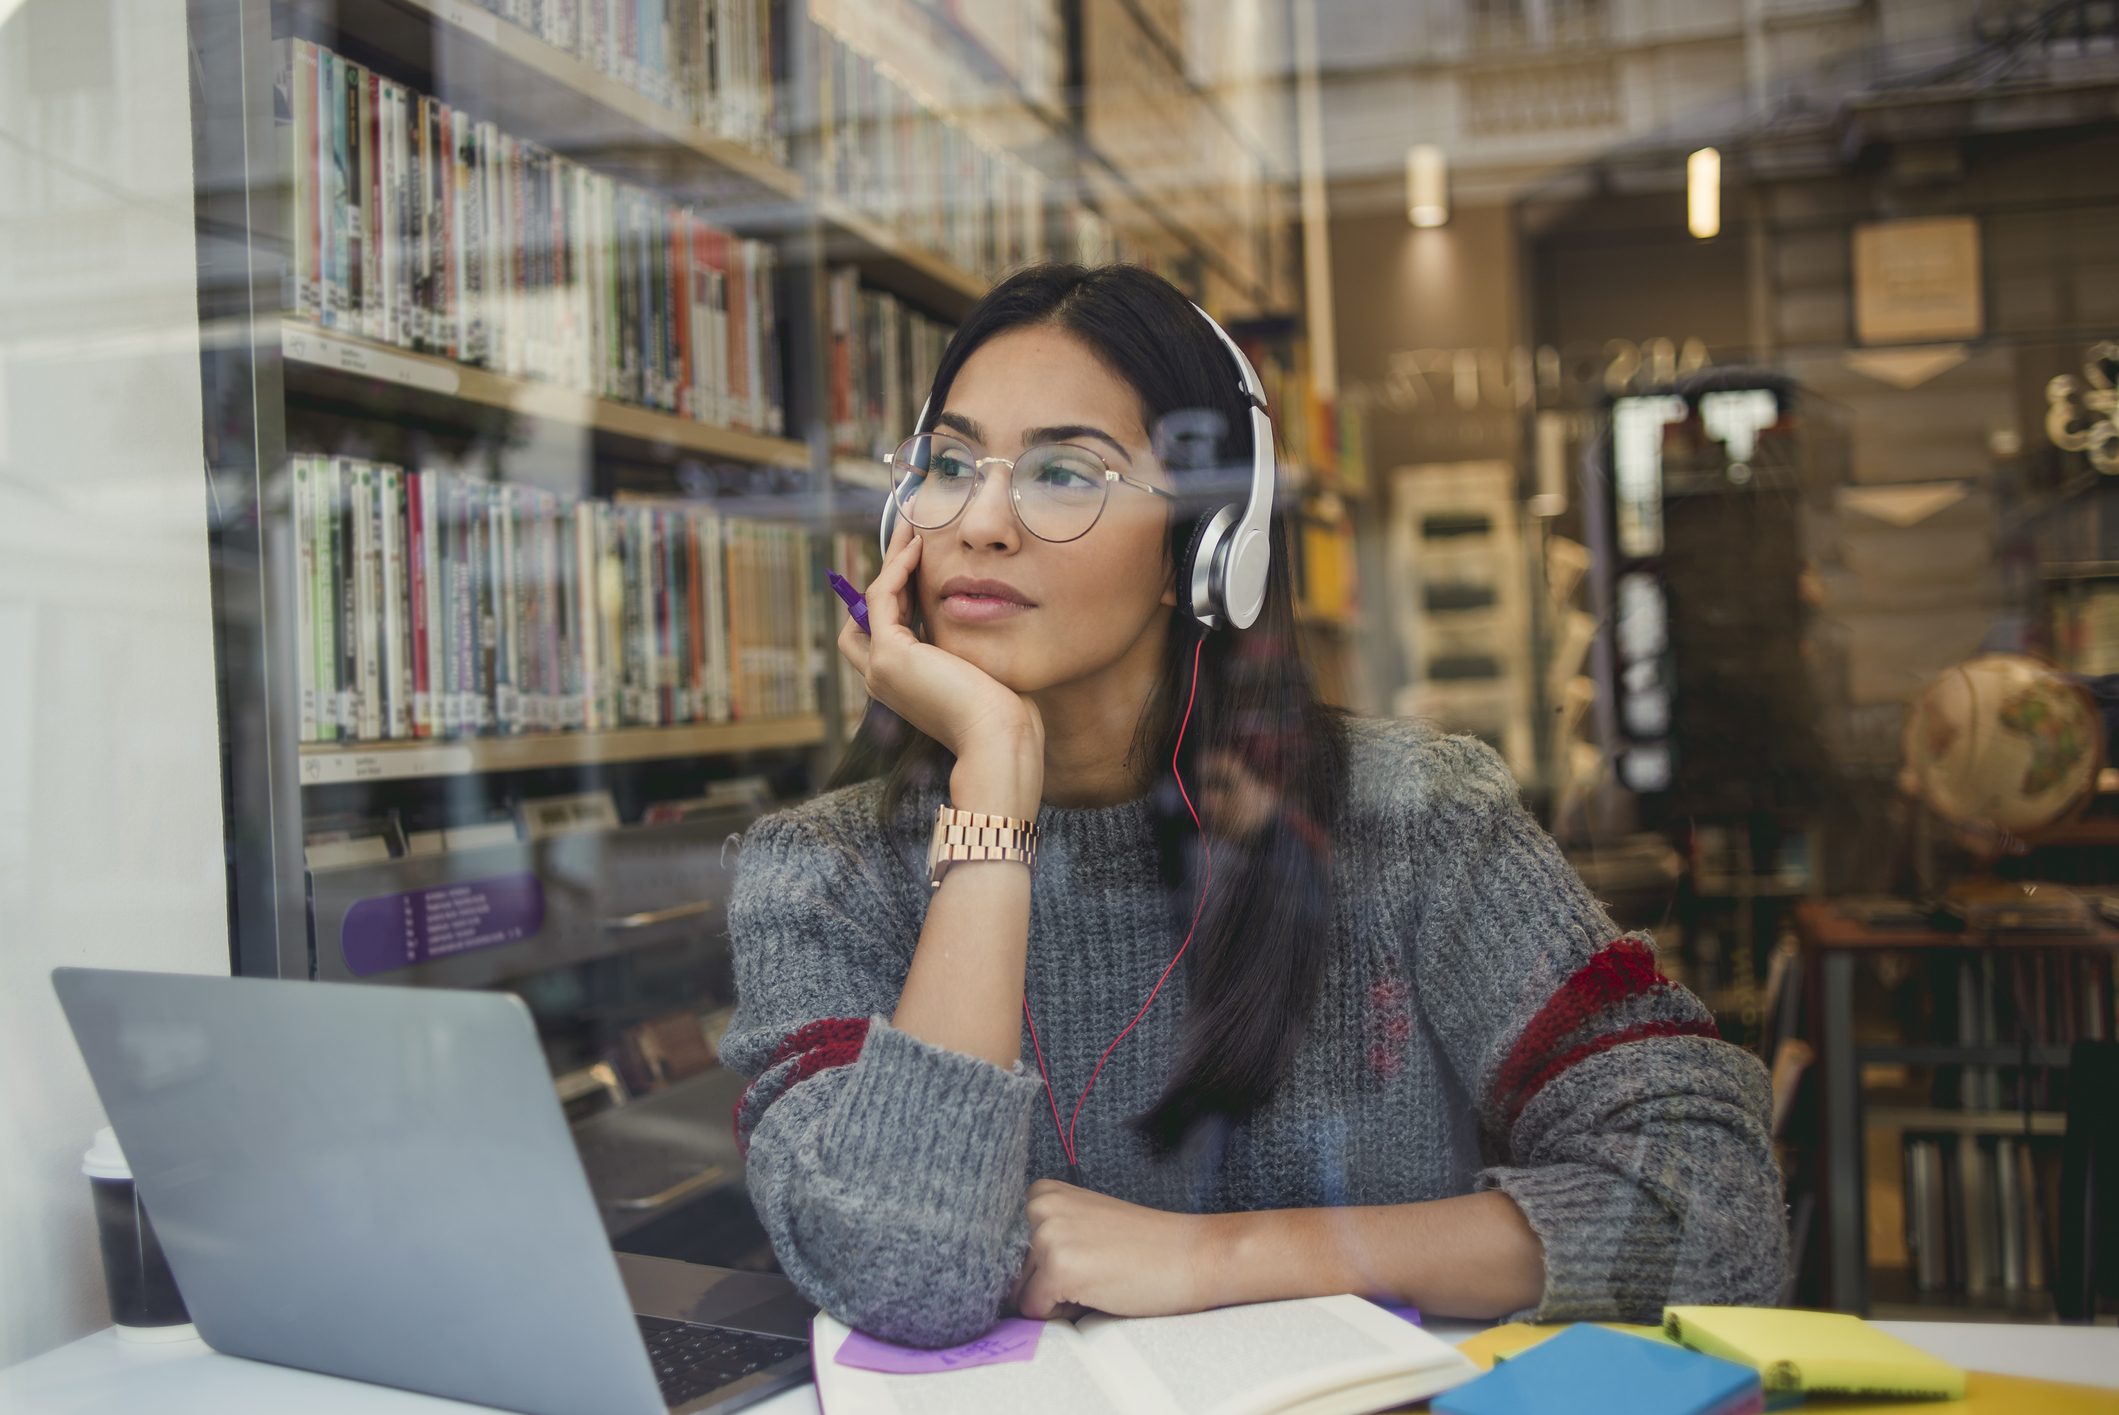 Should You Listen To Music While Doing Intellectual Work? It Depends On The Music, The Task, And Your Personality